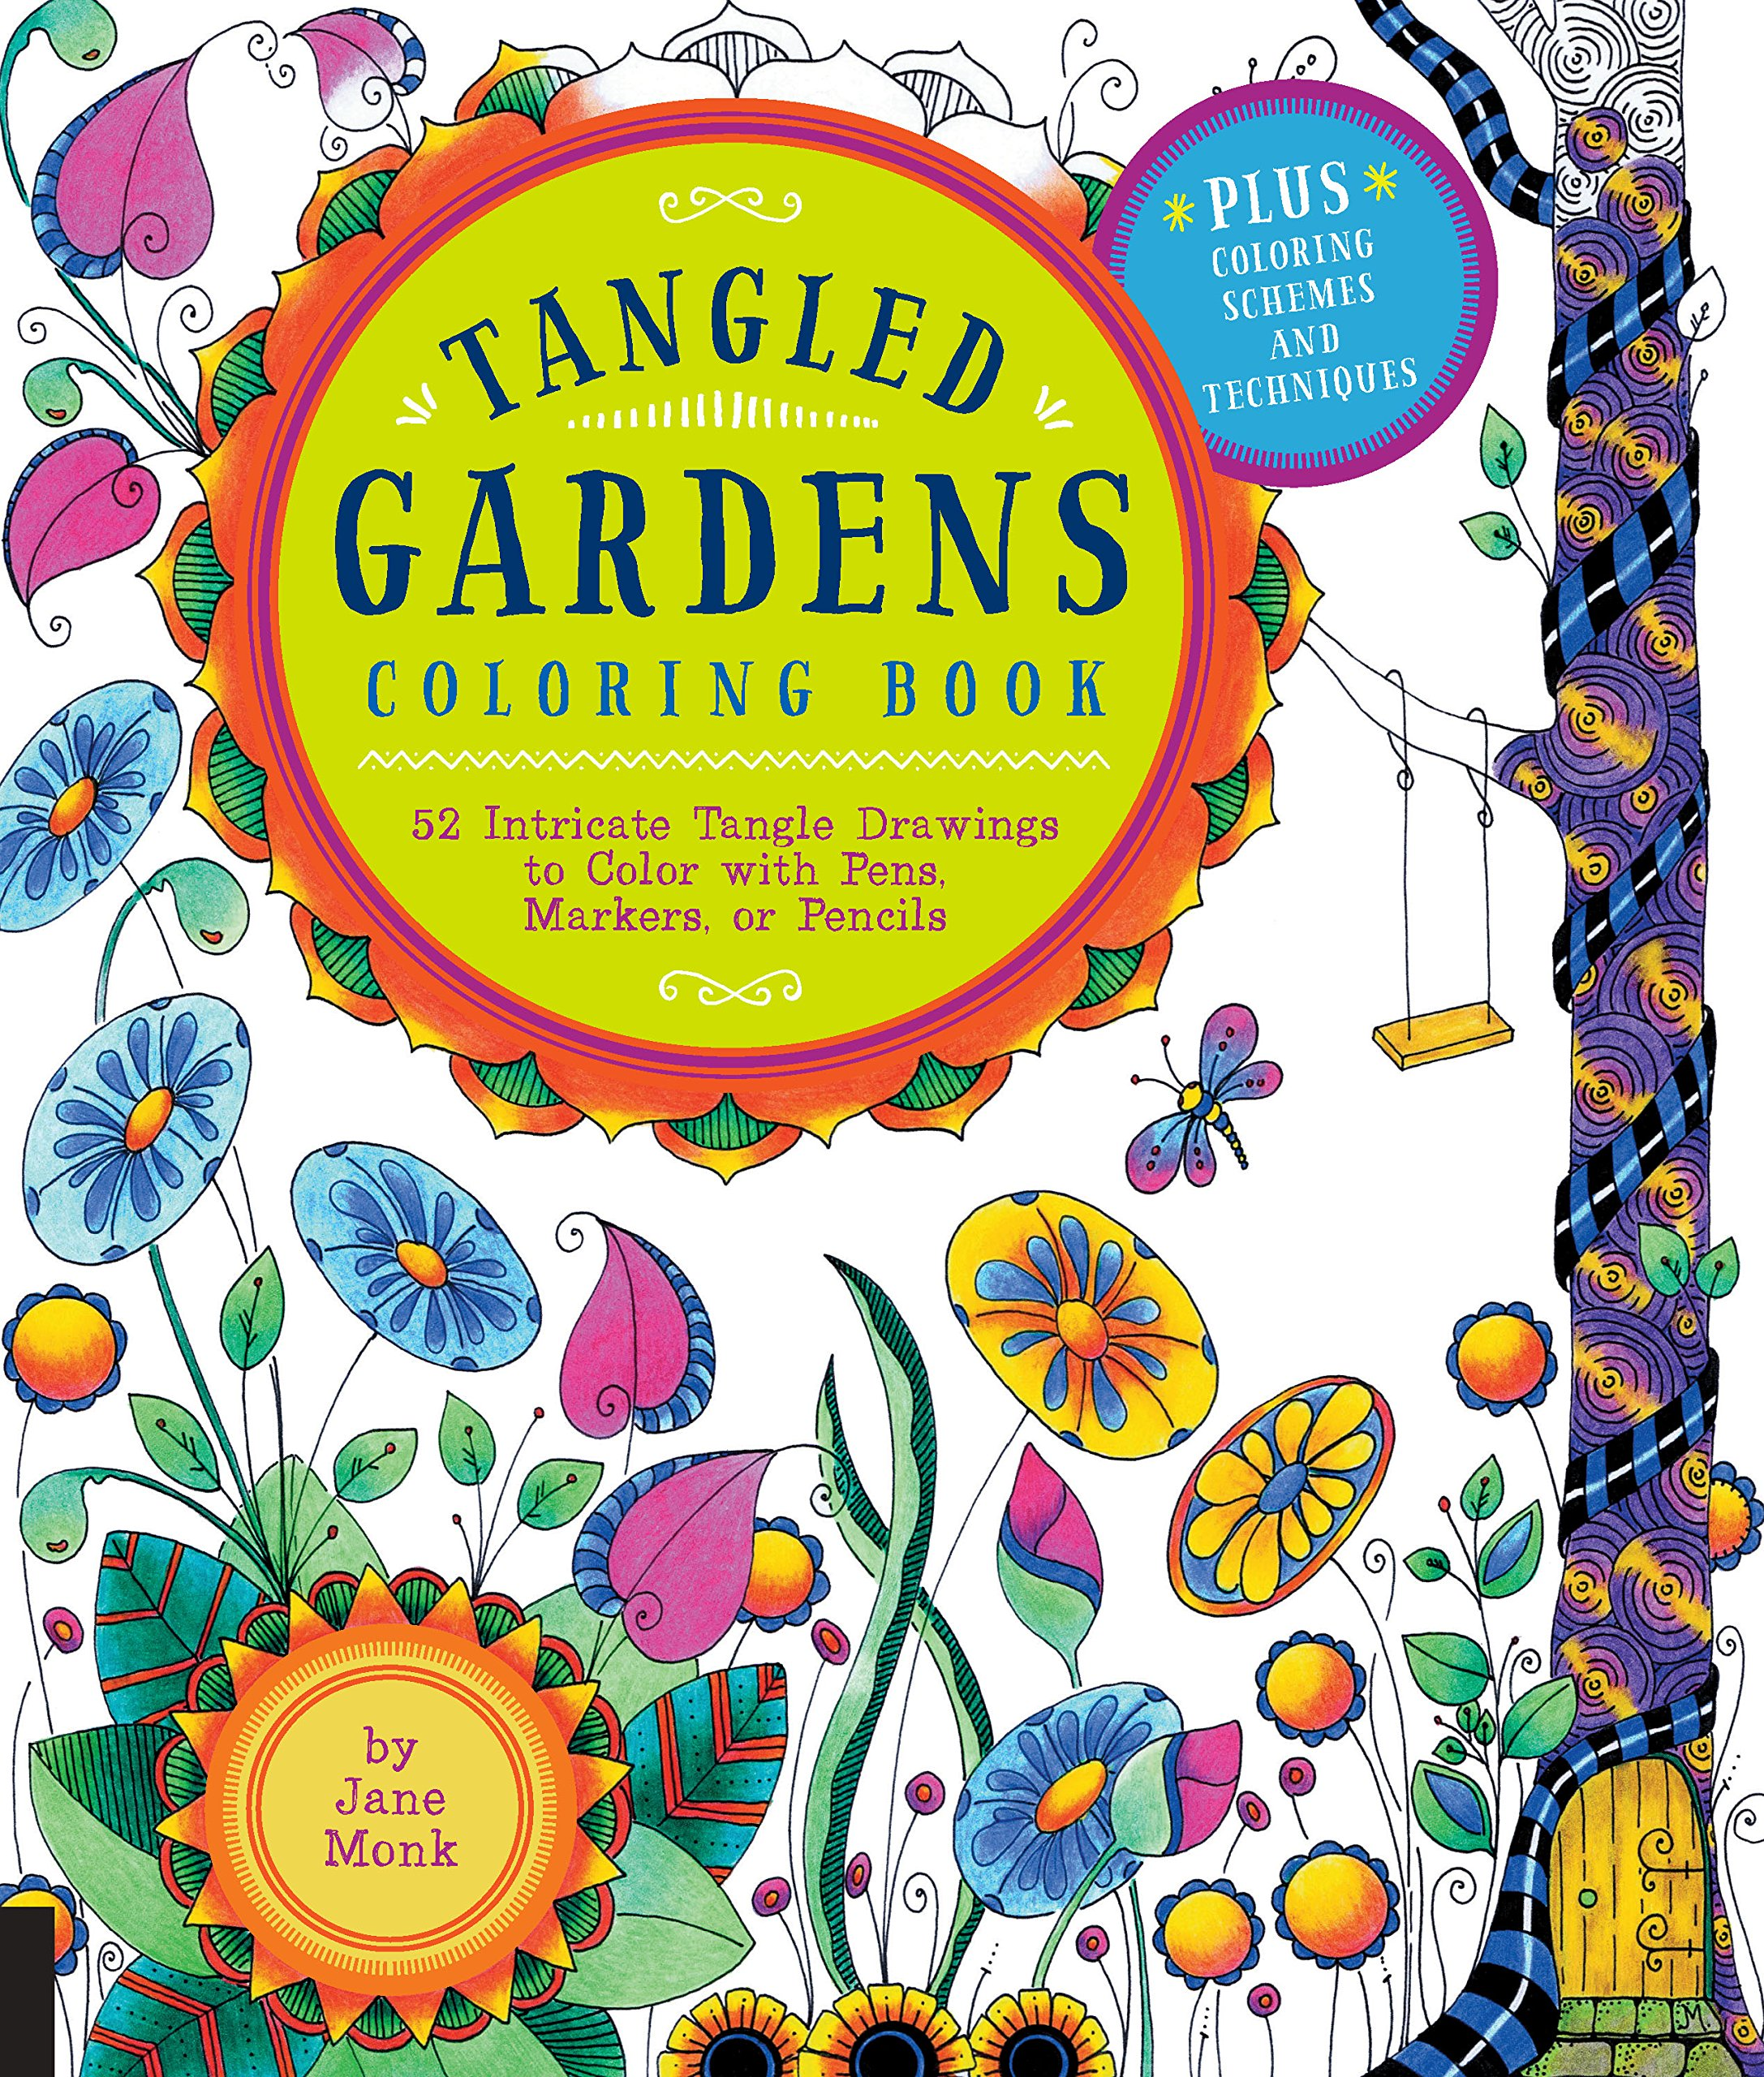 tangled gardens coloring book 52 intricate tangle drawings to color with pens markers or pencils tangled color and draw